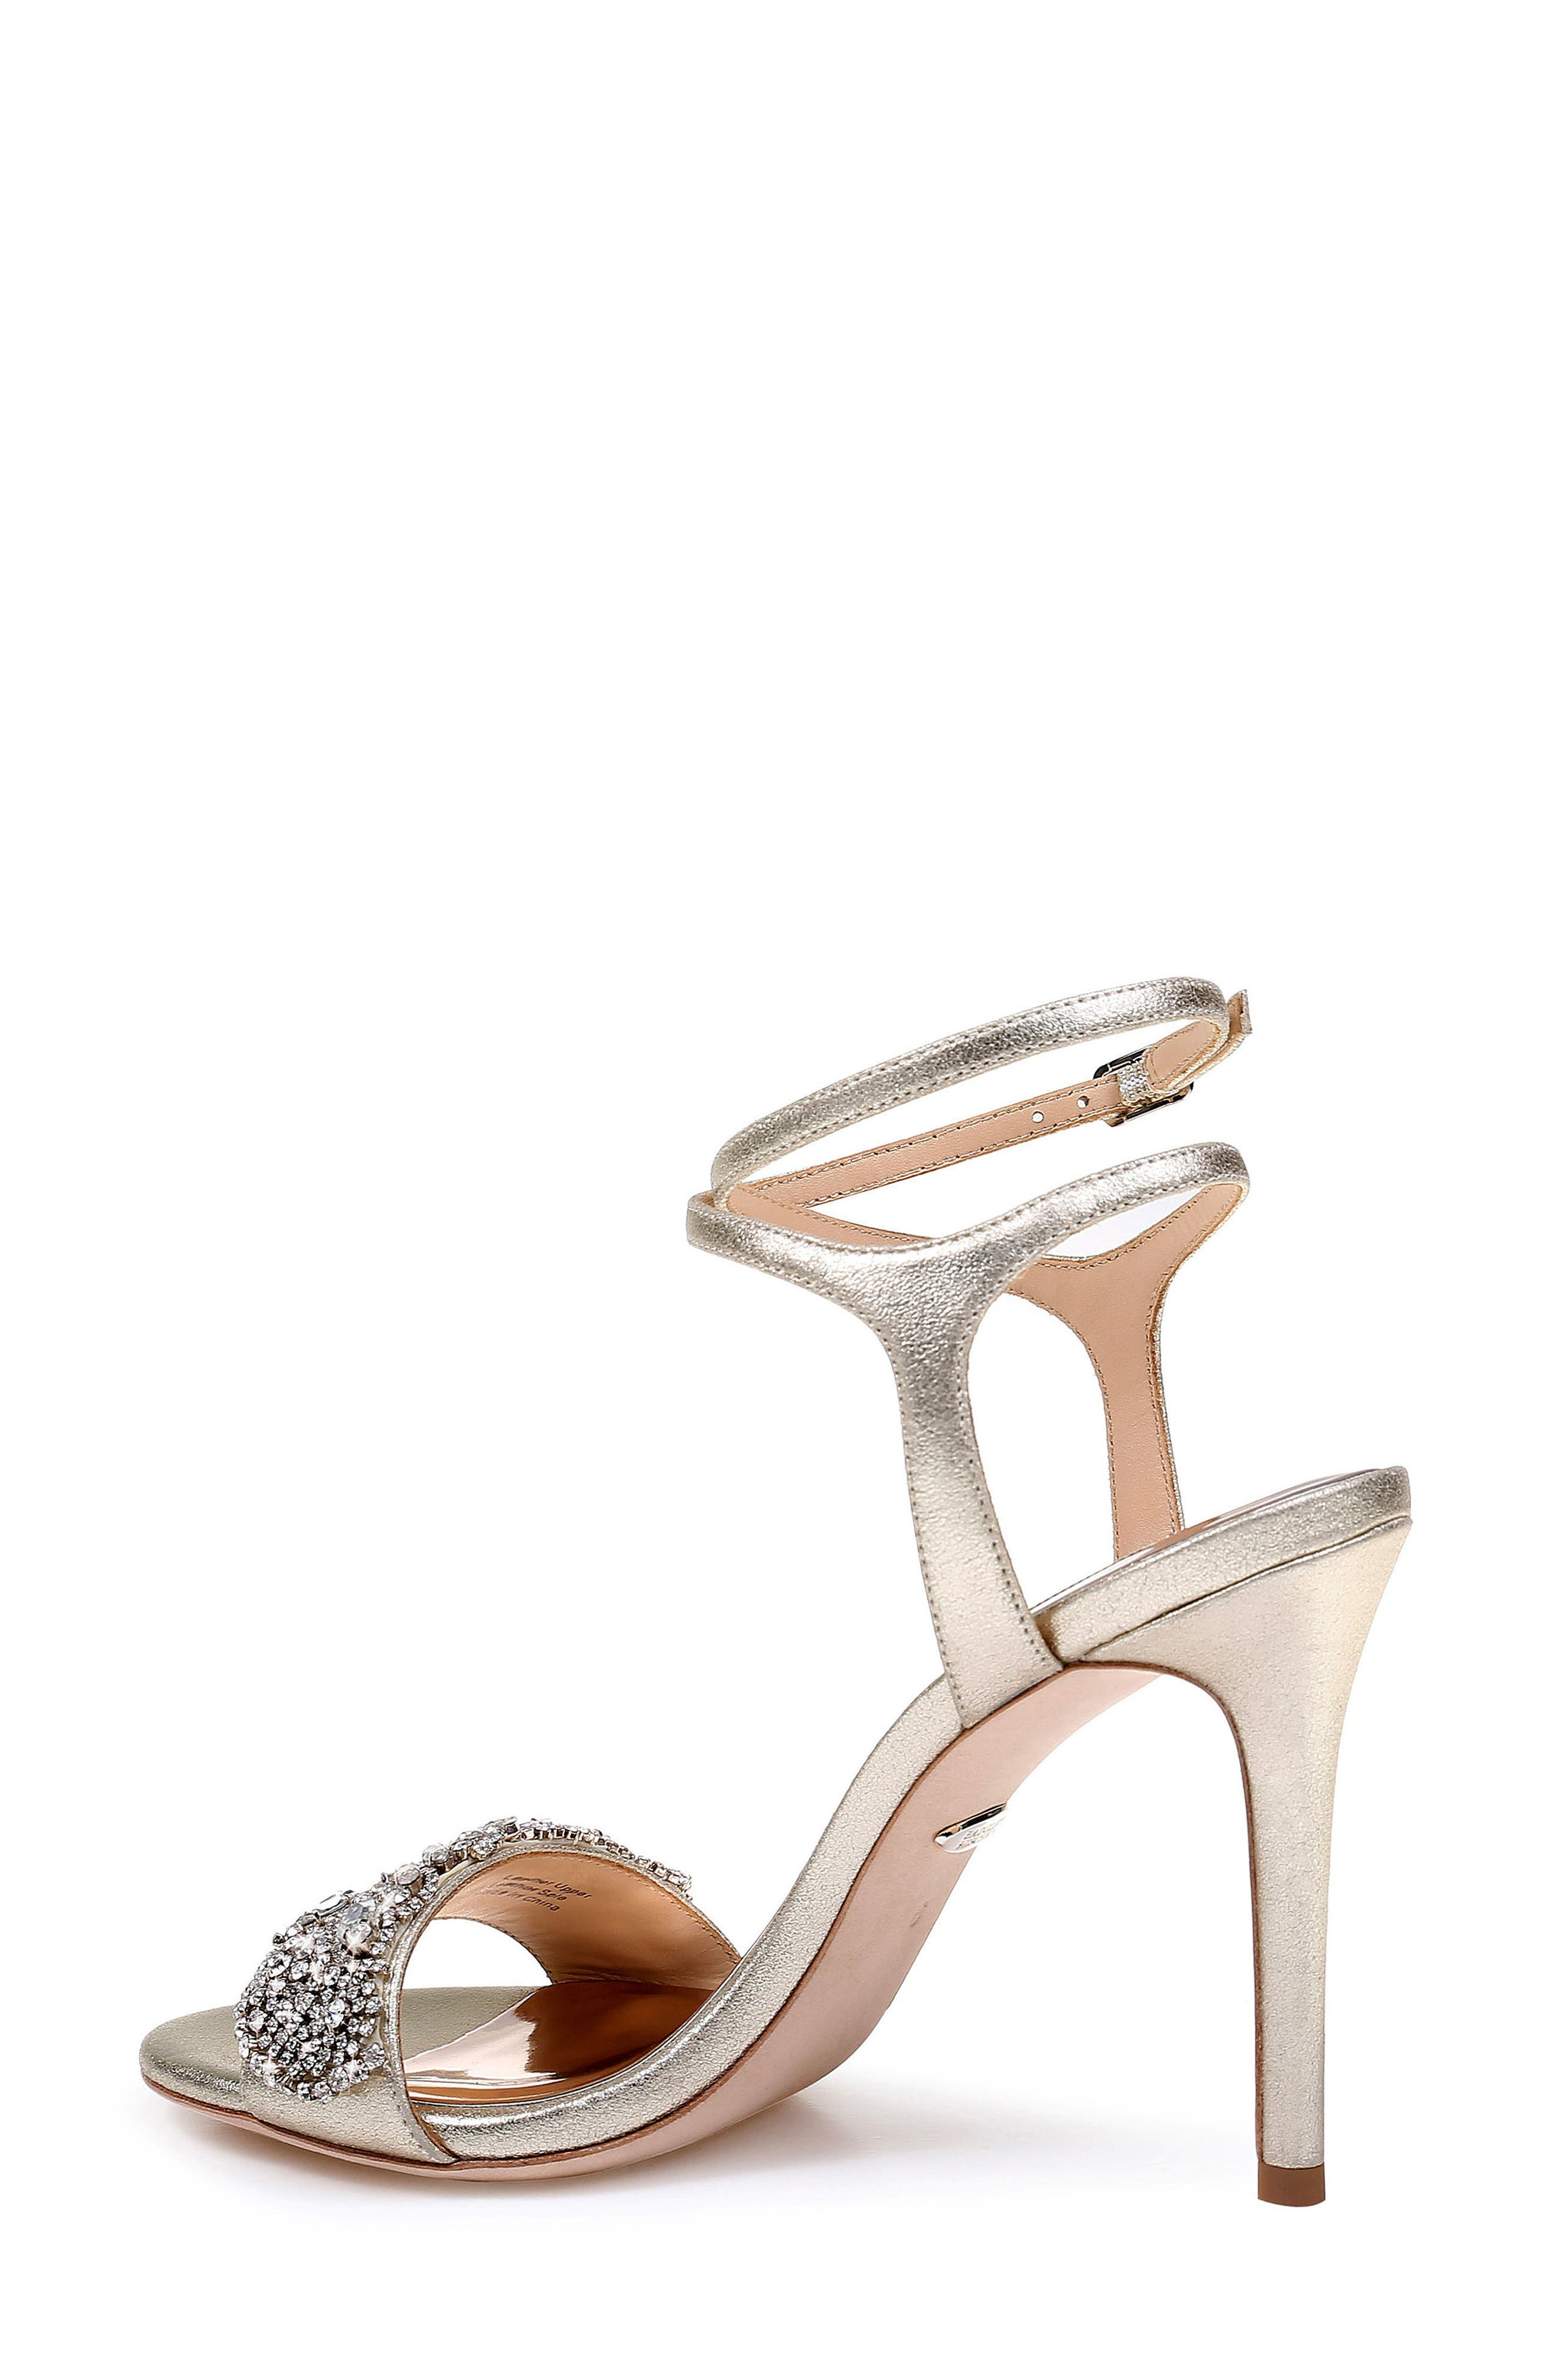 Hailey Embellished Ankle Strap Sandal,                             Alternate thumbnail 2, color,                             040